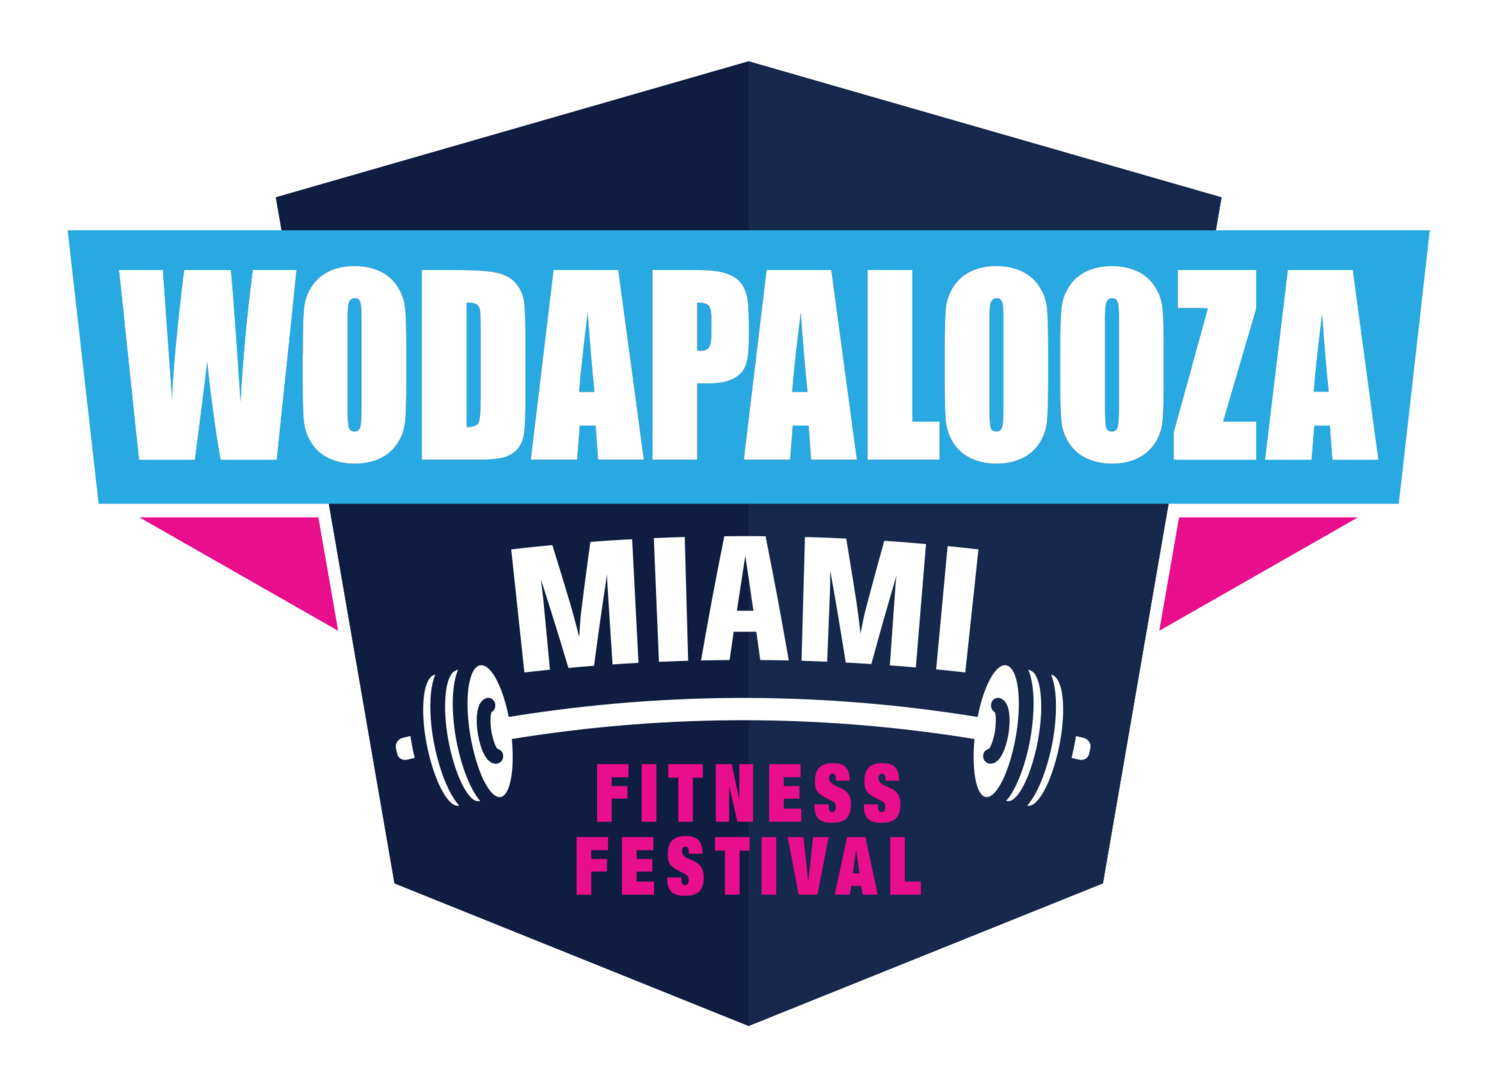 Wodapalooza Apparel 2018